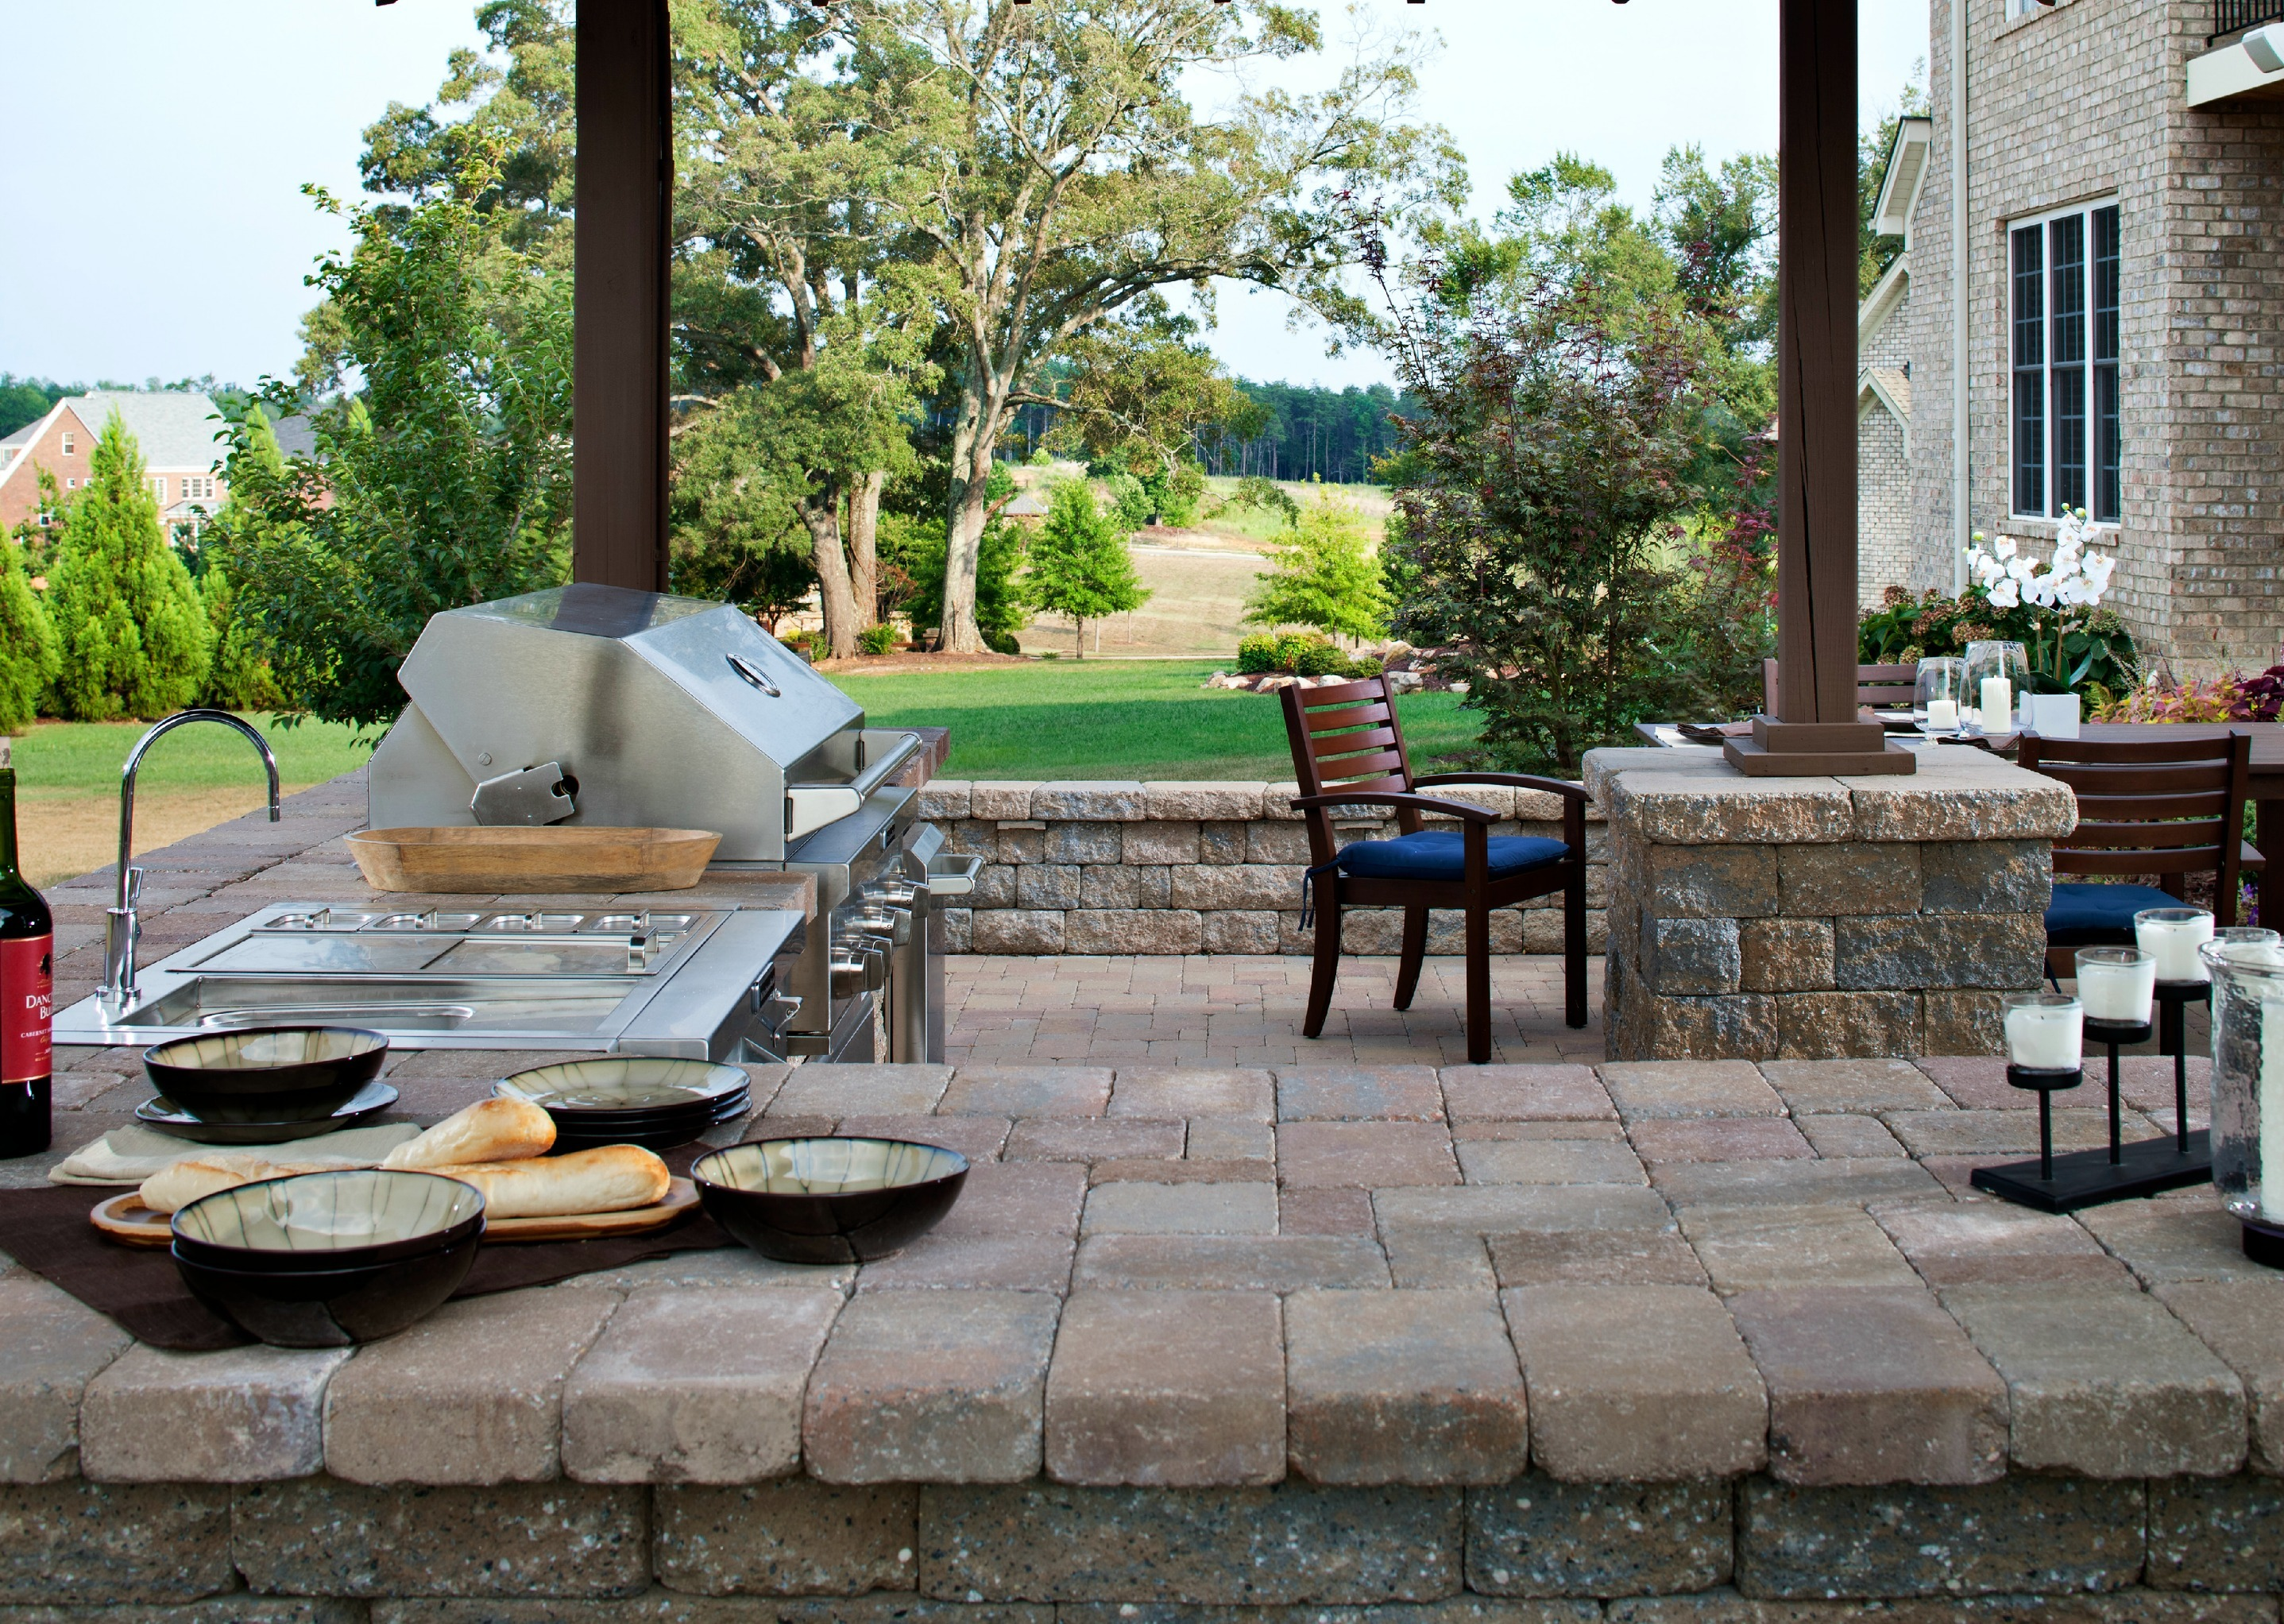 Outdoor Kitchens Outdoor Kitchen Trends 9 Hot Ideas For Your Backyard Install It